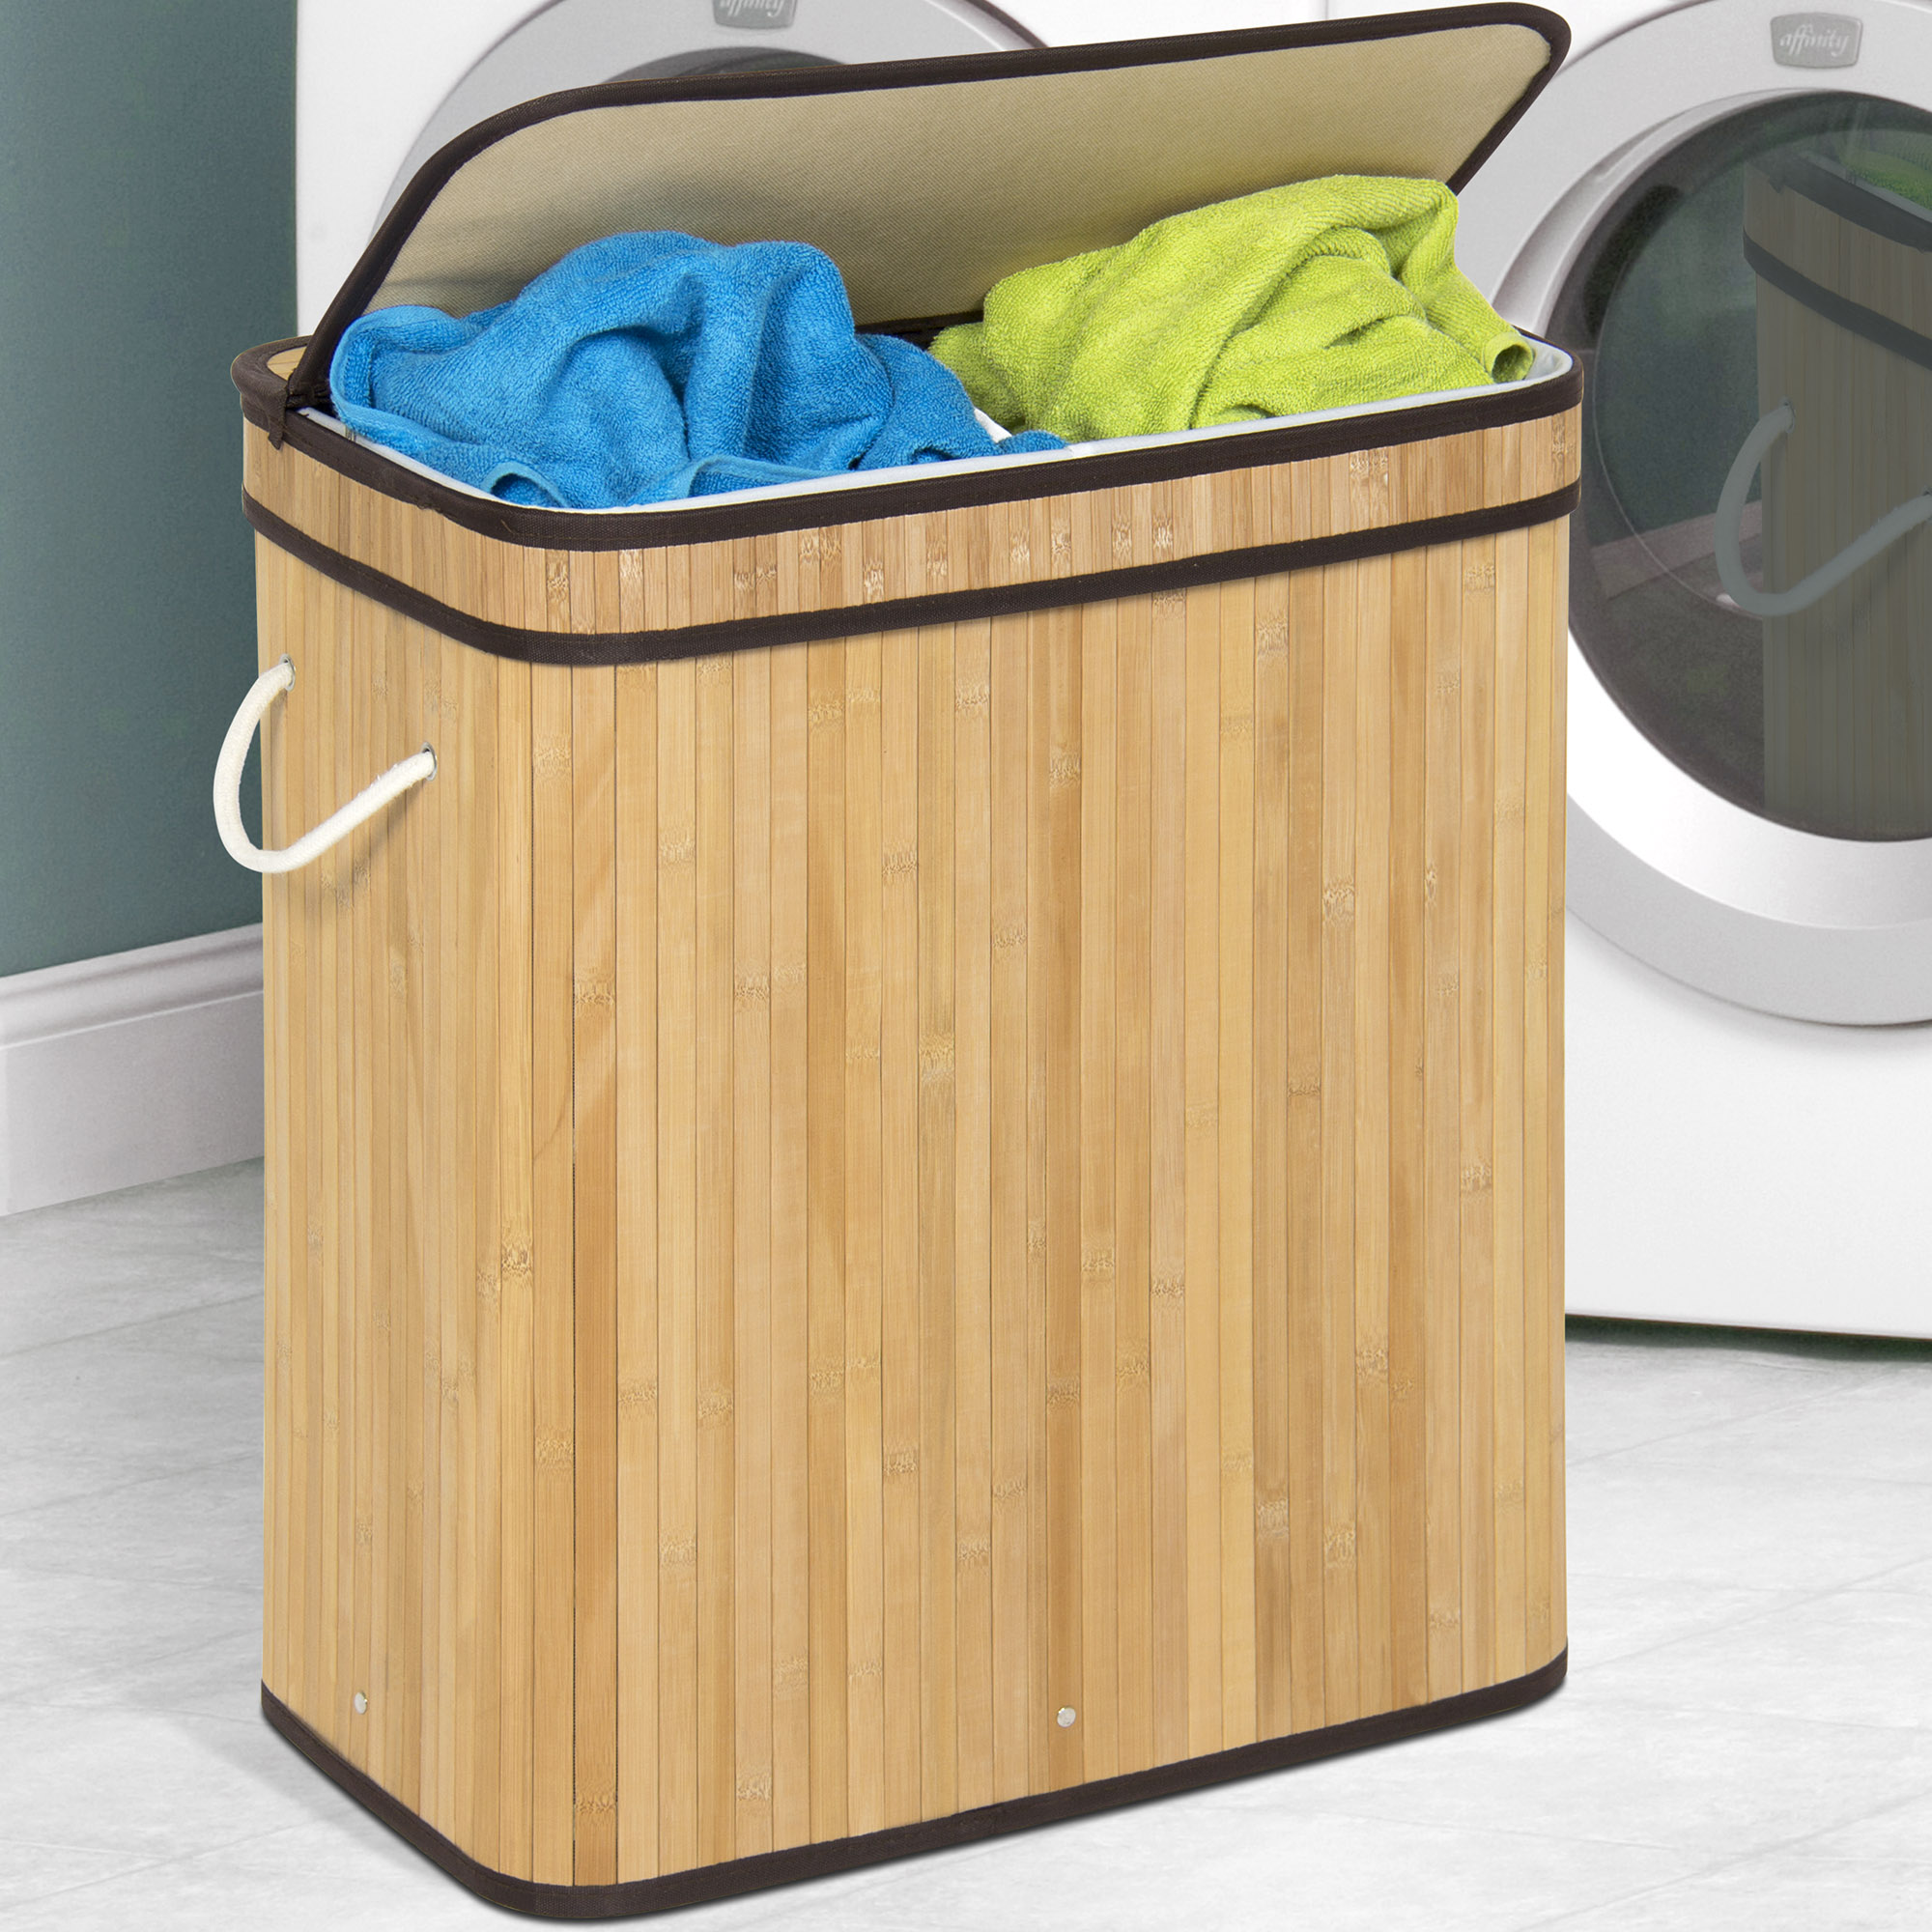 Best Choice Products Foldable Double Section Bamboo Hamper Laundry Basket w  Removable Liner Bag Natural by Best Choice Products